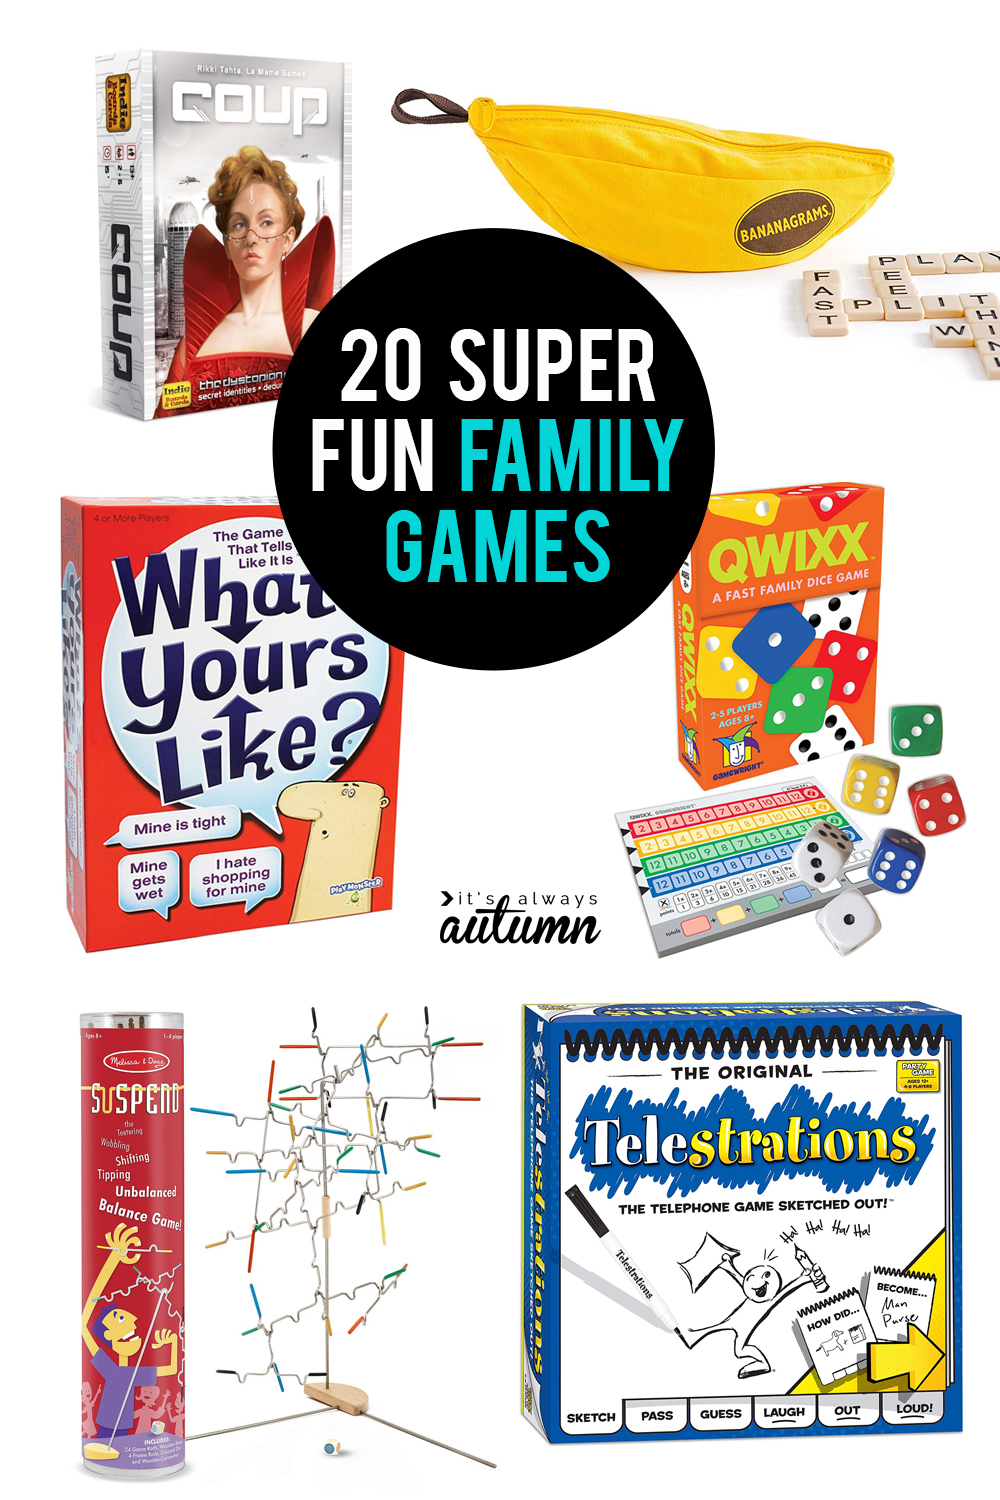 20 best family board games you won't get tired of playing!